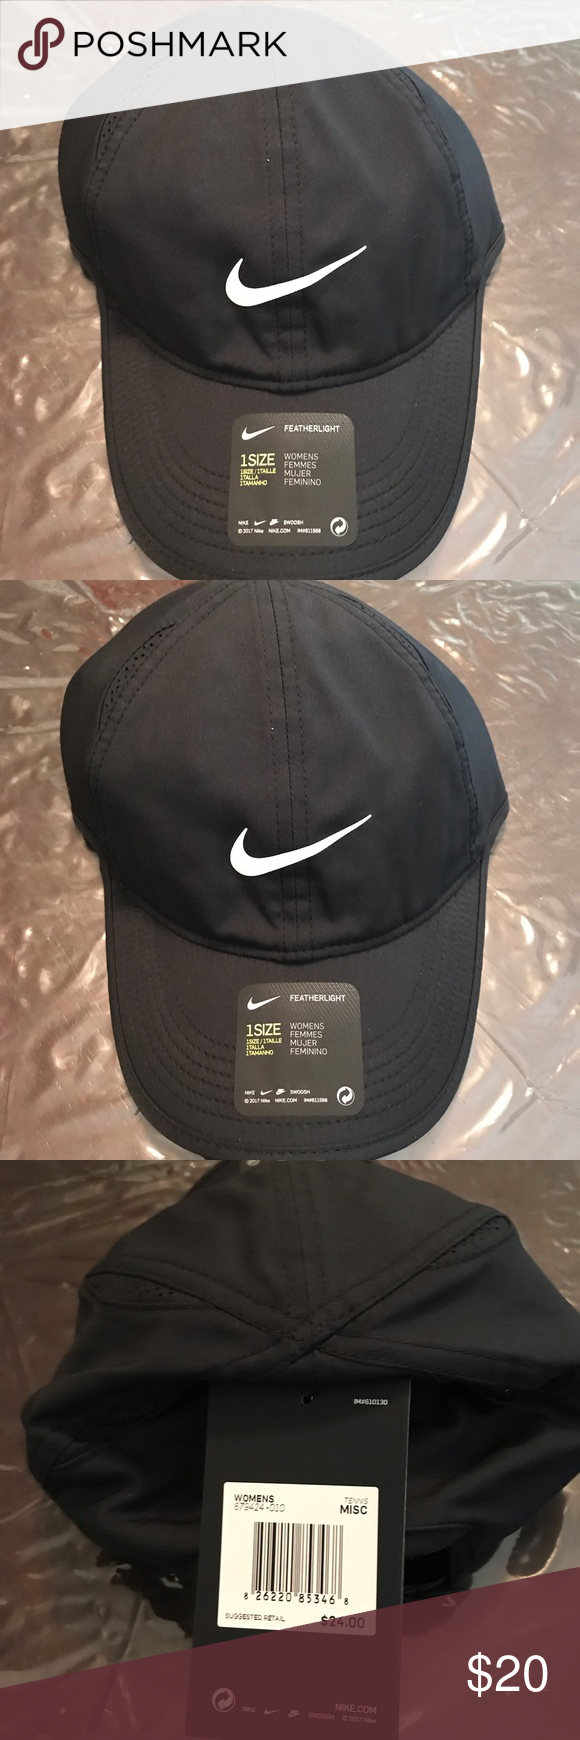 deb650af32c Women s Nike Featherlight Dri-FIT Hat Women s Nike Featherlight Dri-FIT Hat  Nike Accessories